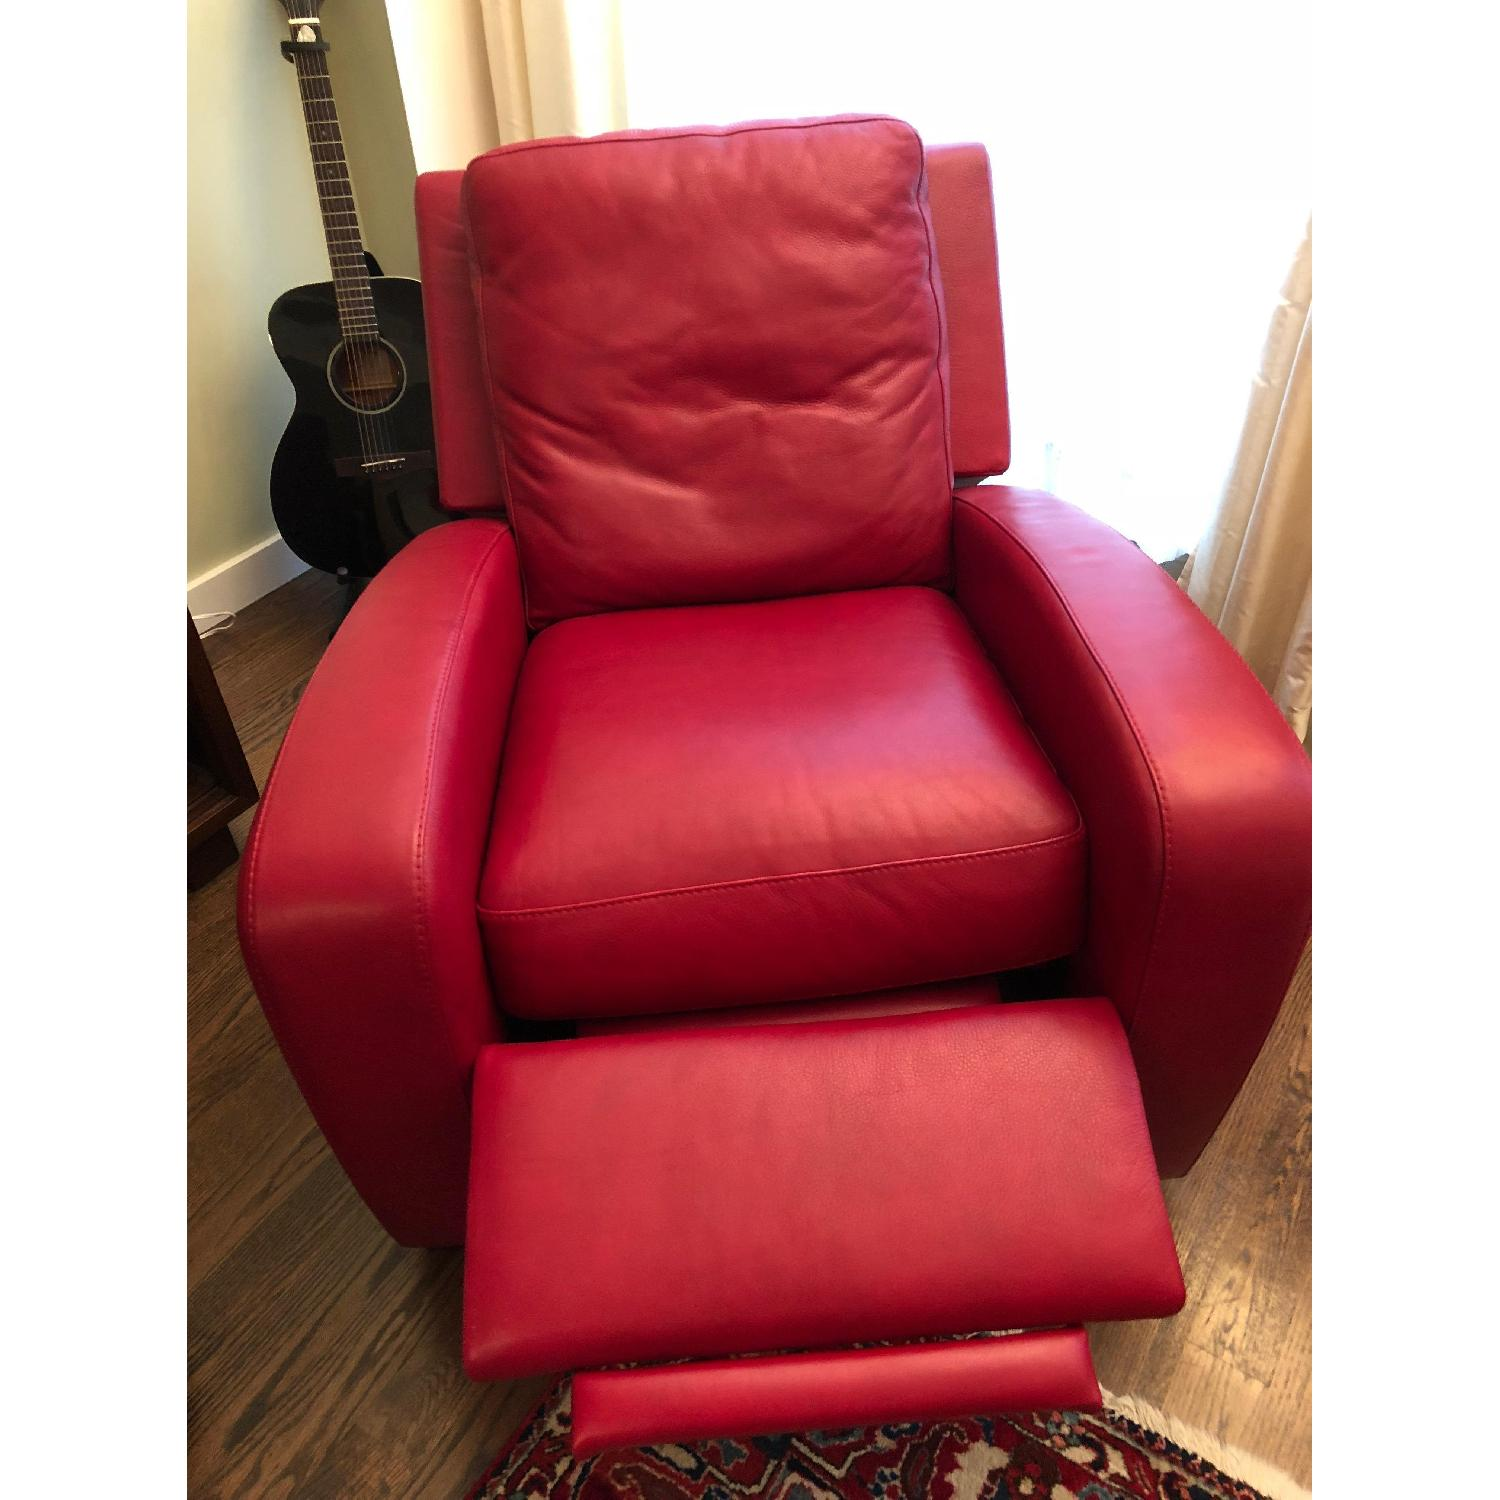 Crate & Barrel Leather Recliner in Red-1